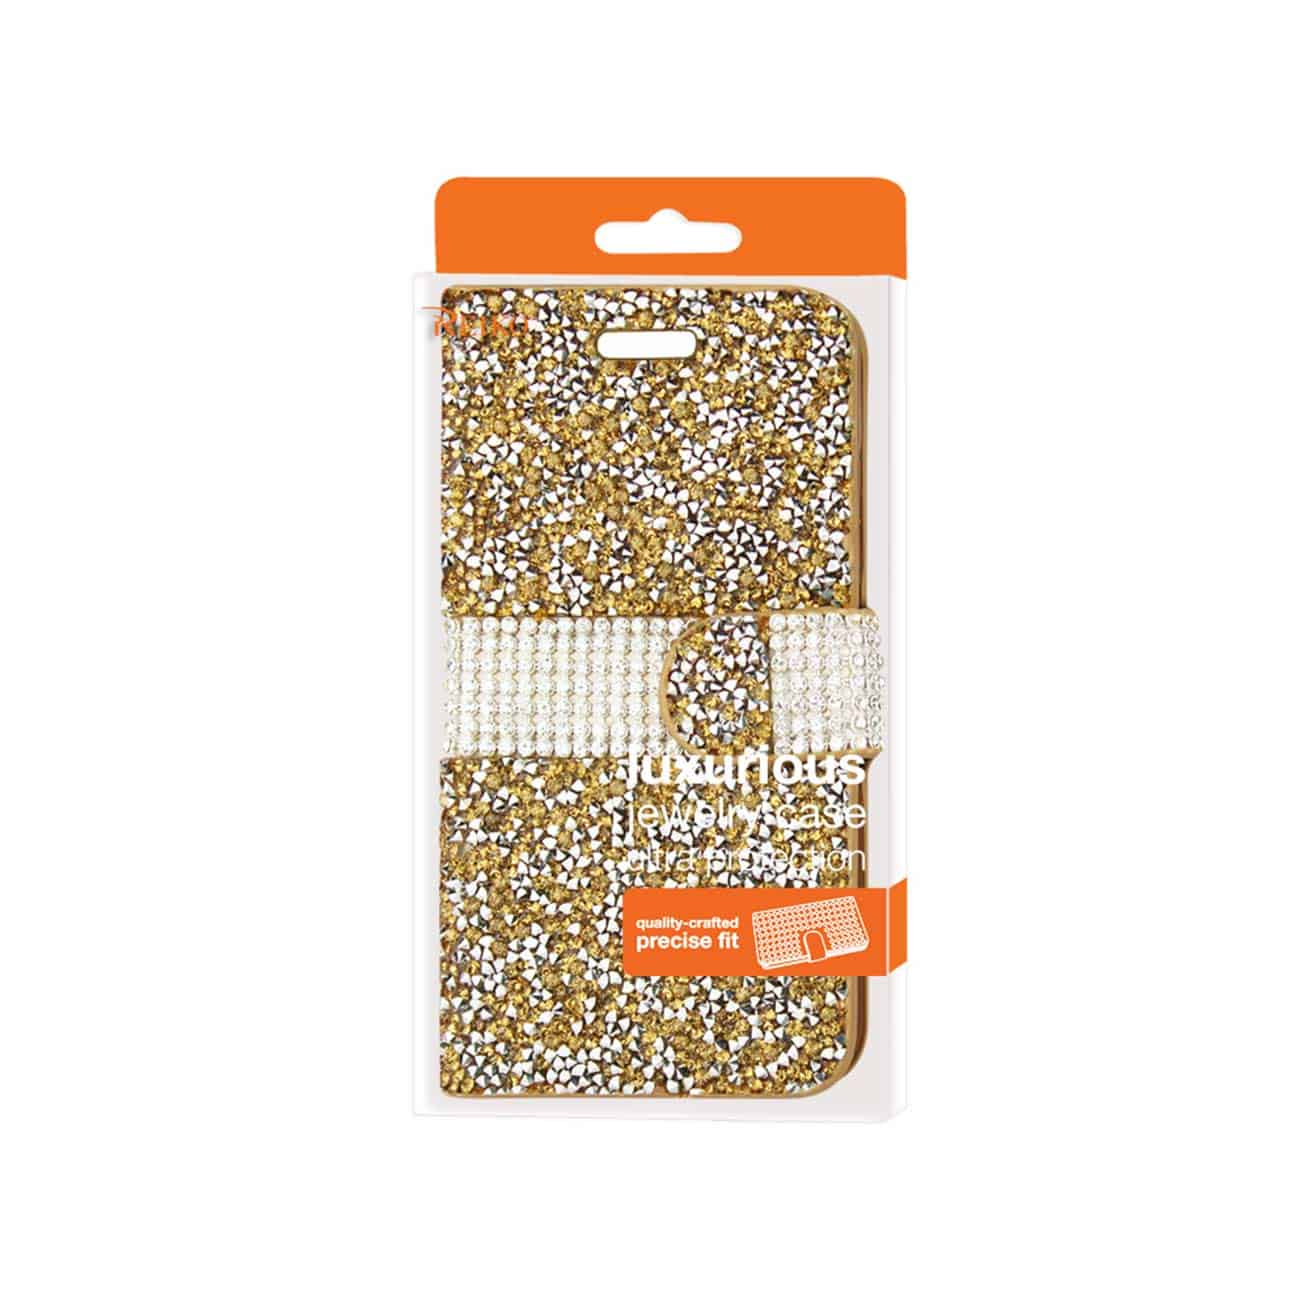 SAMSUNG GALAXY GRAND PRIME JEWELRY RHINESTONE WALLET CASE IN GOLD